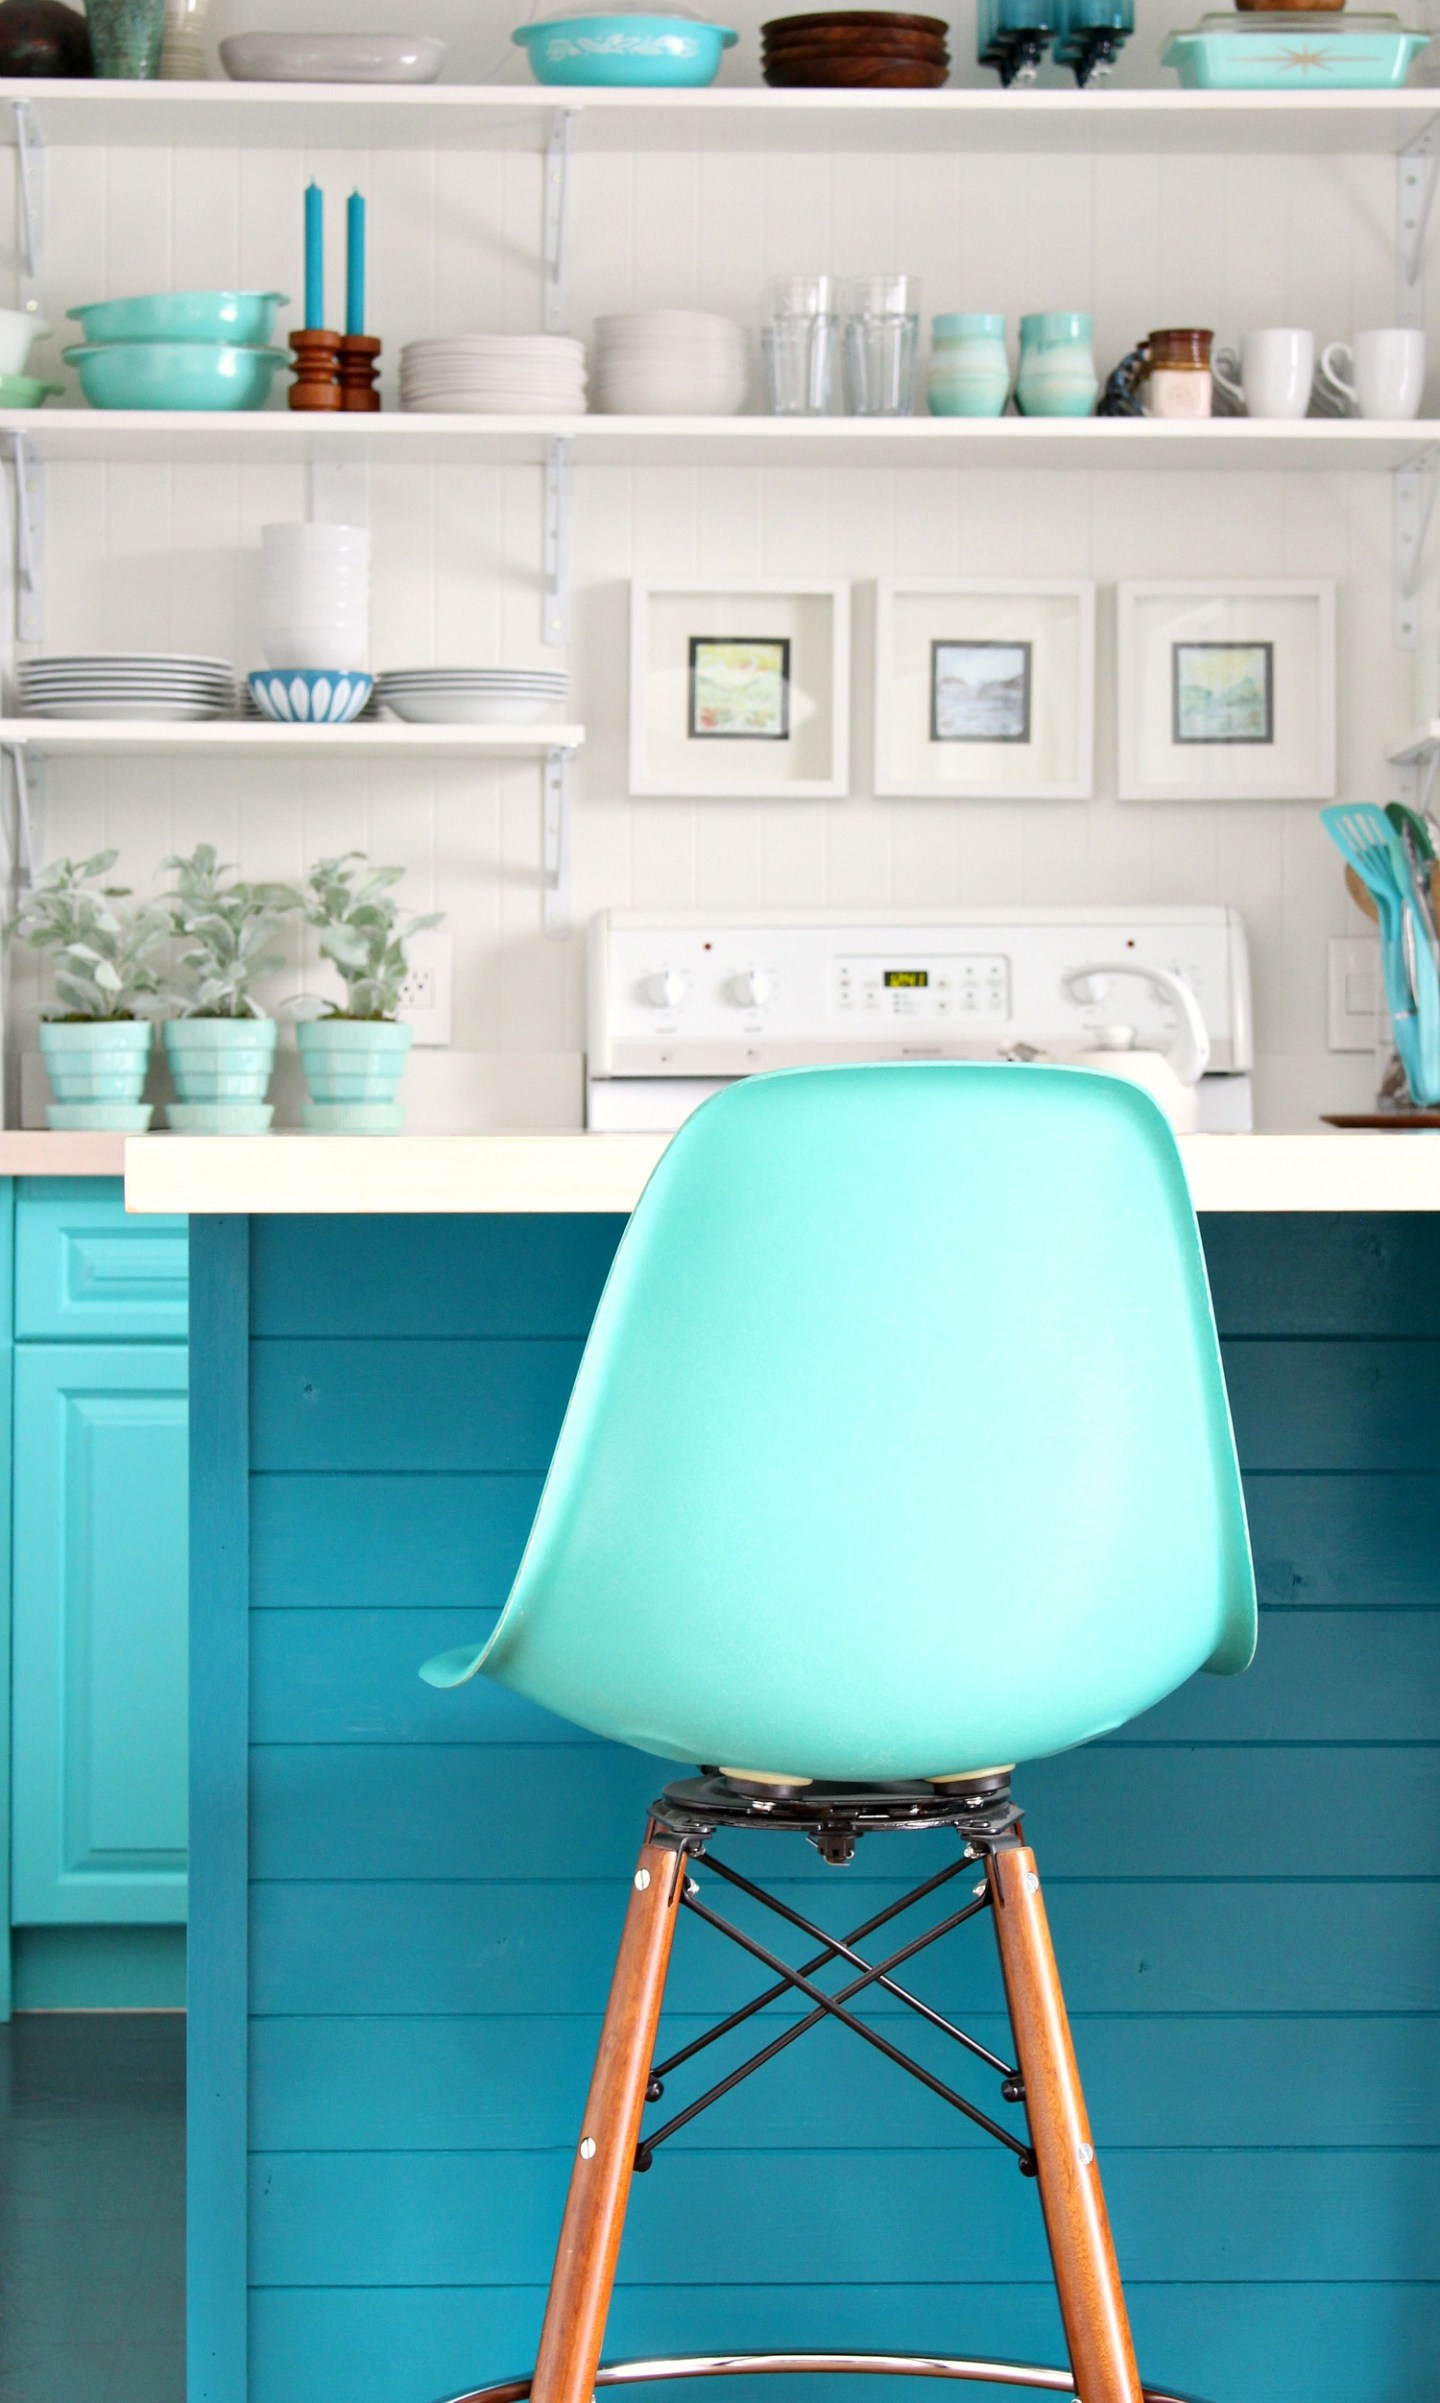 How to Install Tongue and Groove Paneling on Kitchen Cabinets (+ New Teal Cabinet Color!)